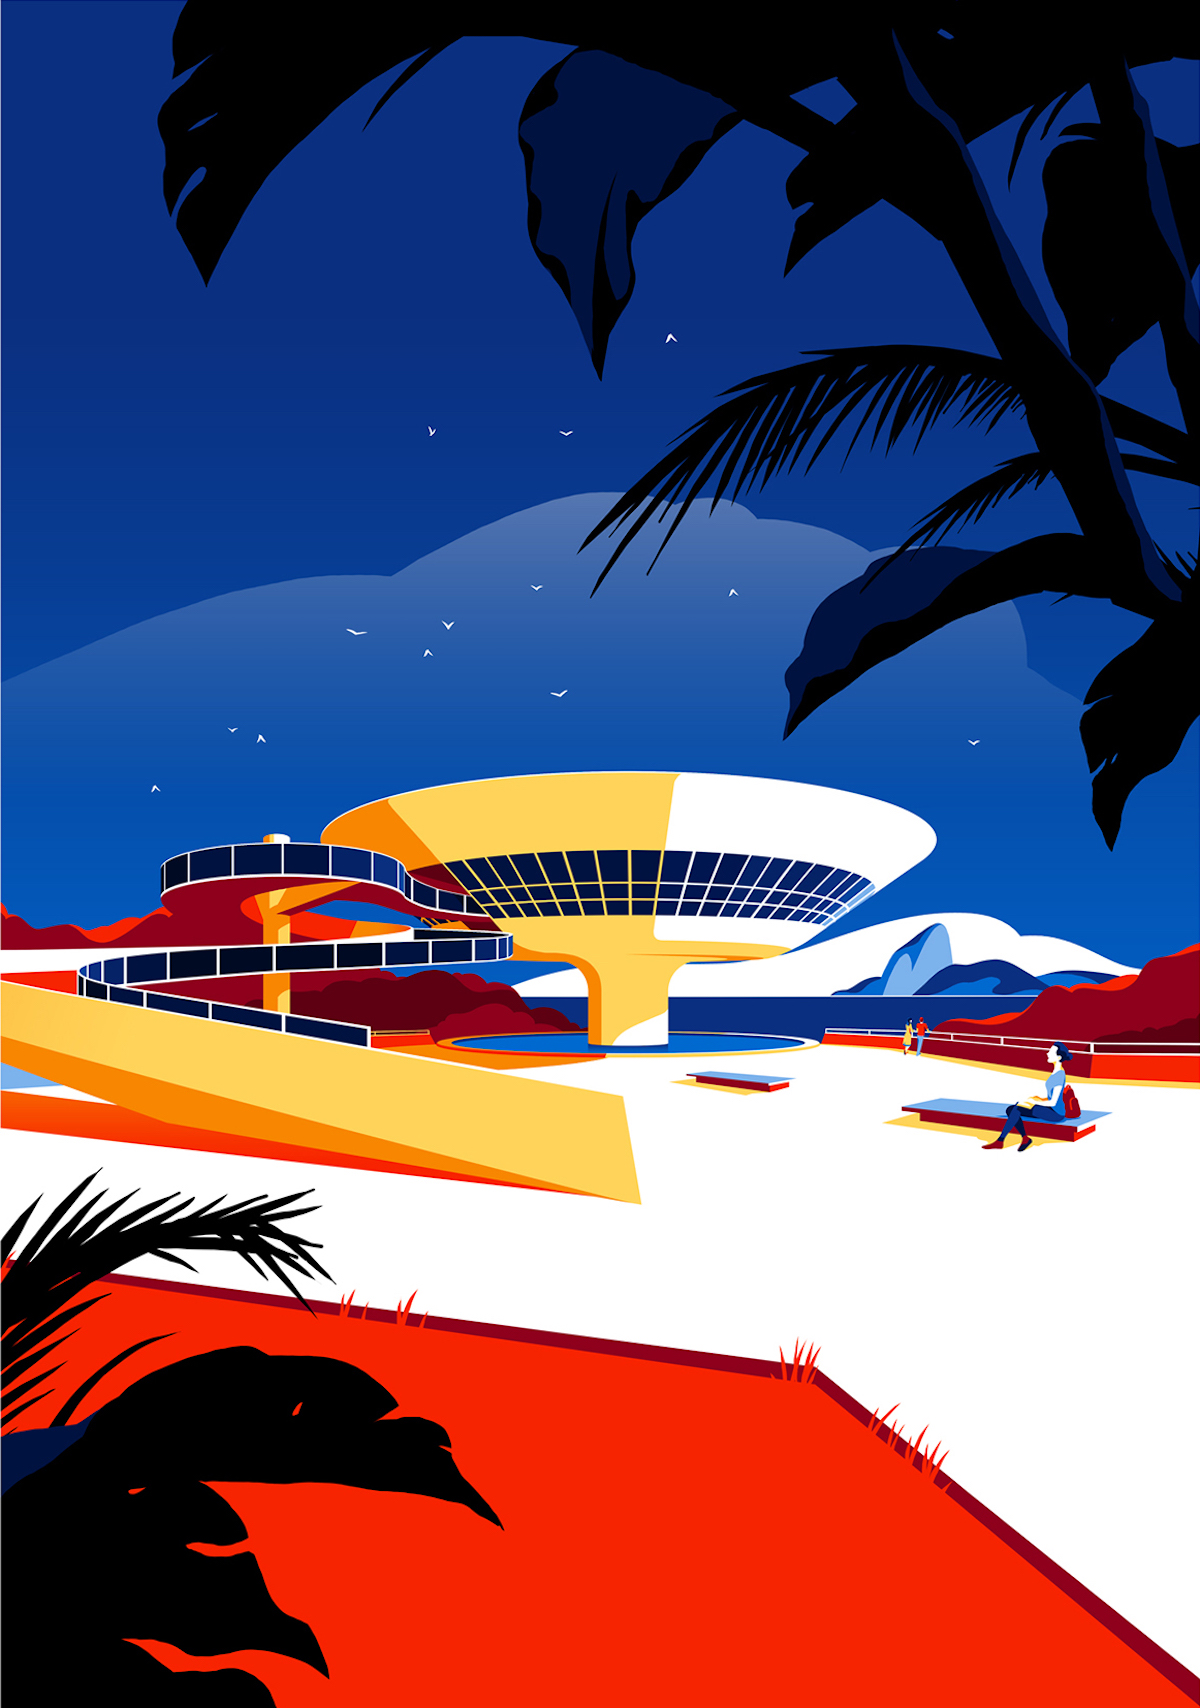 Illustration of the Niterói Contemporary Art Museum